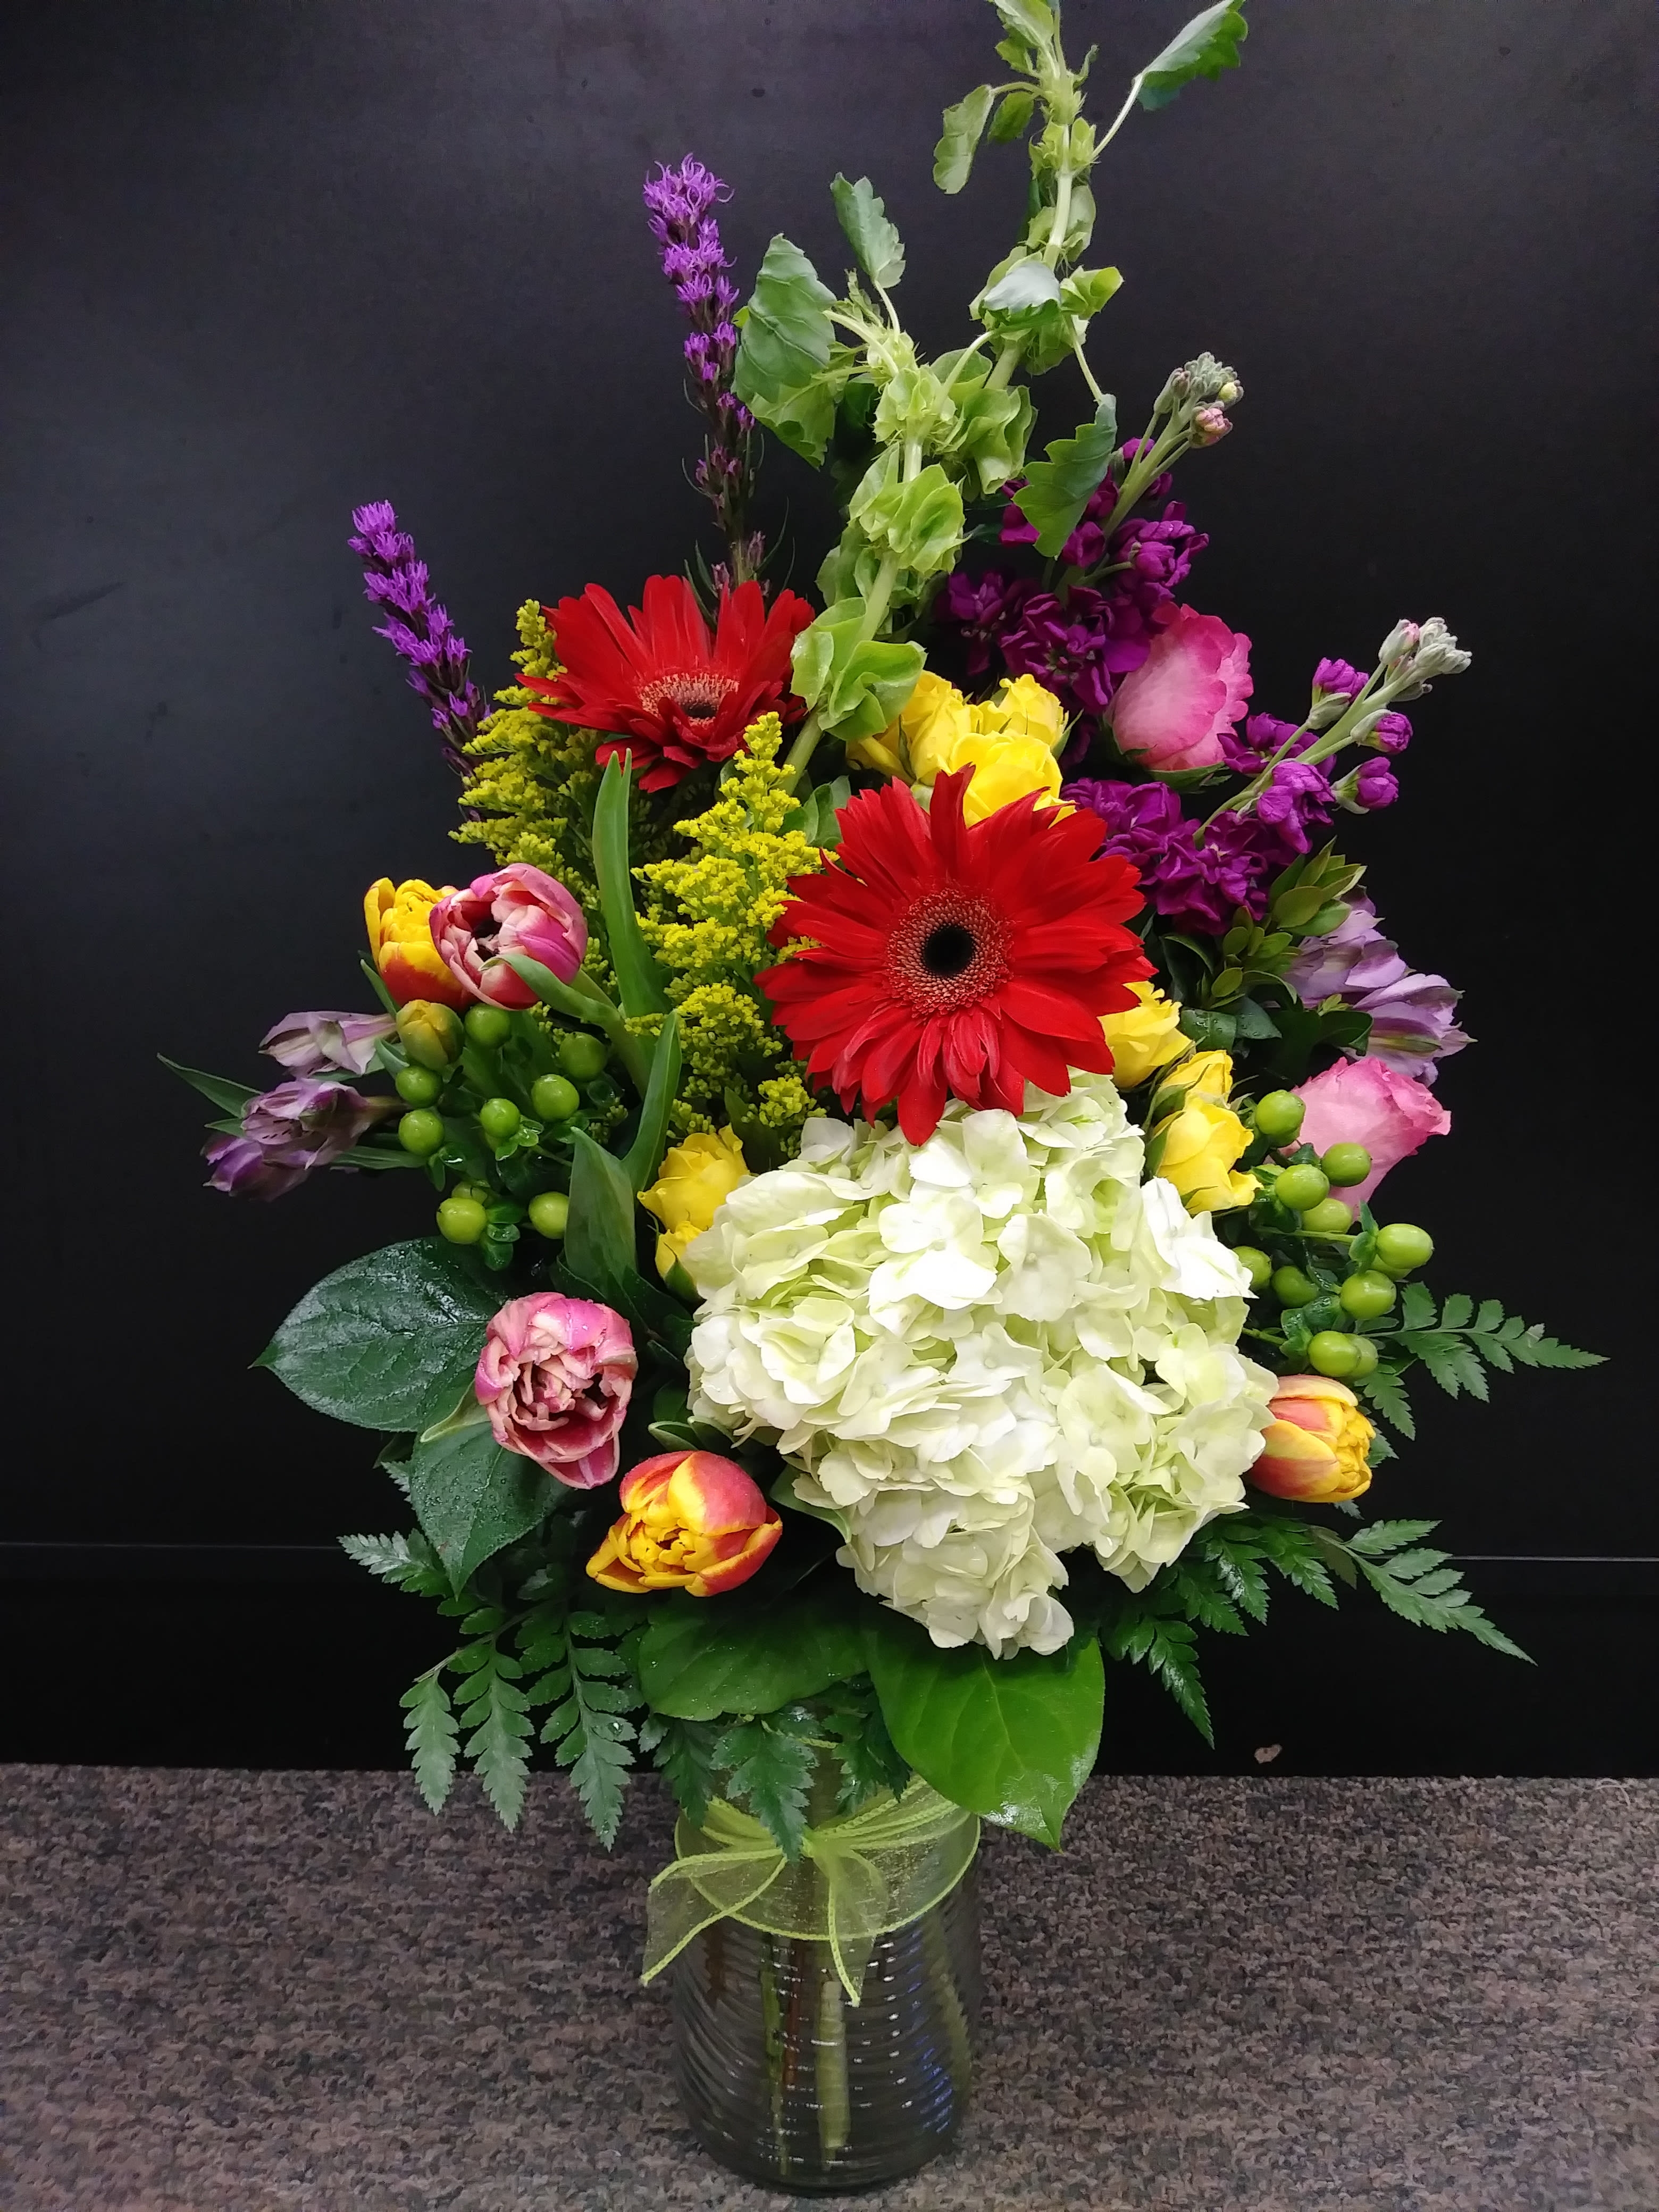 Joyful wishes - A lovely vase arrangement of cheerful spring flowers sure to bring sunshine to